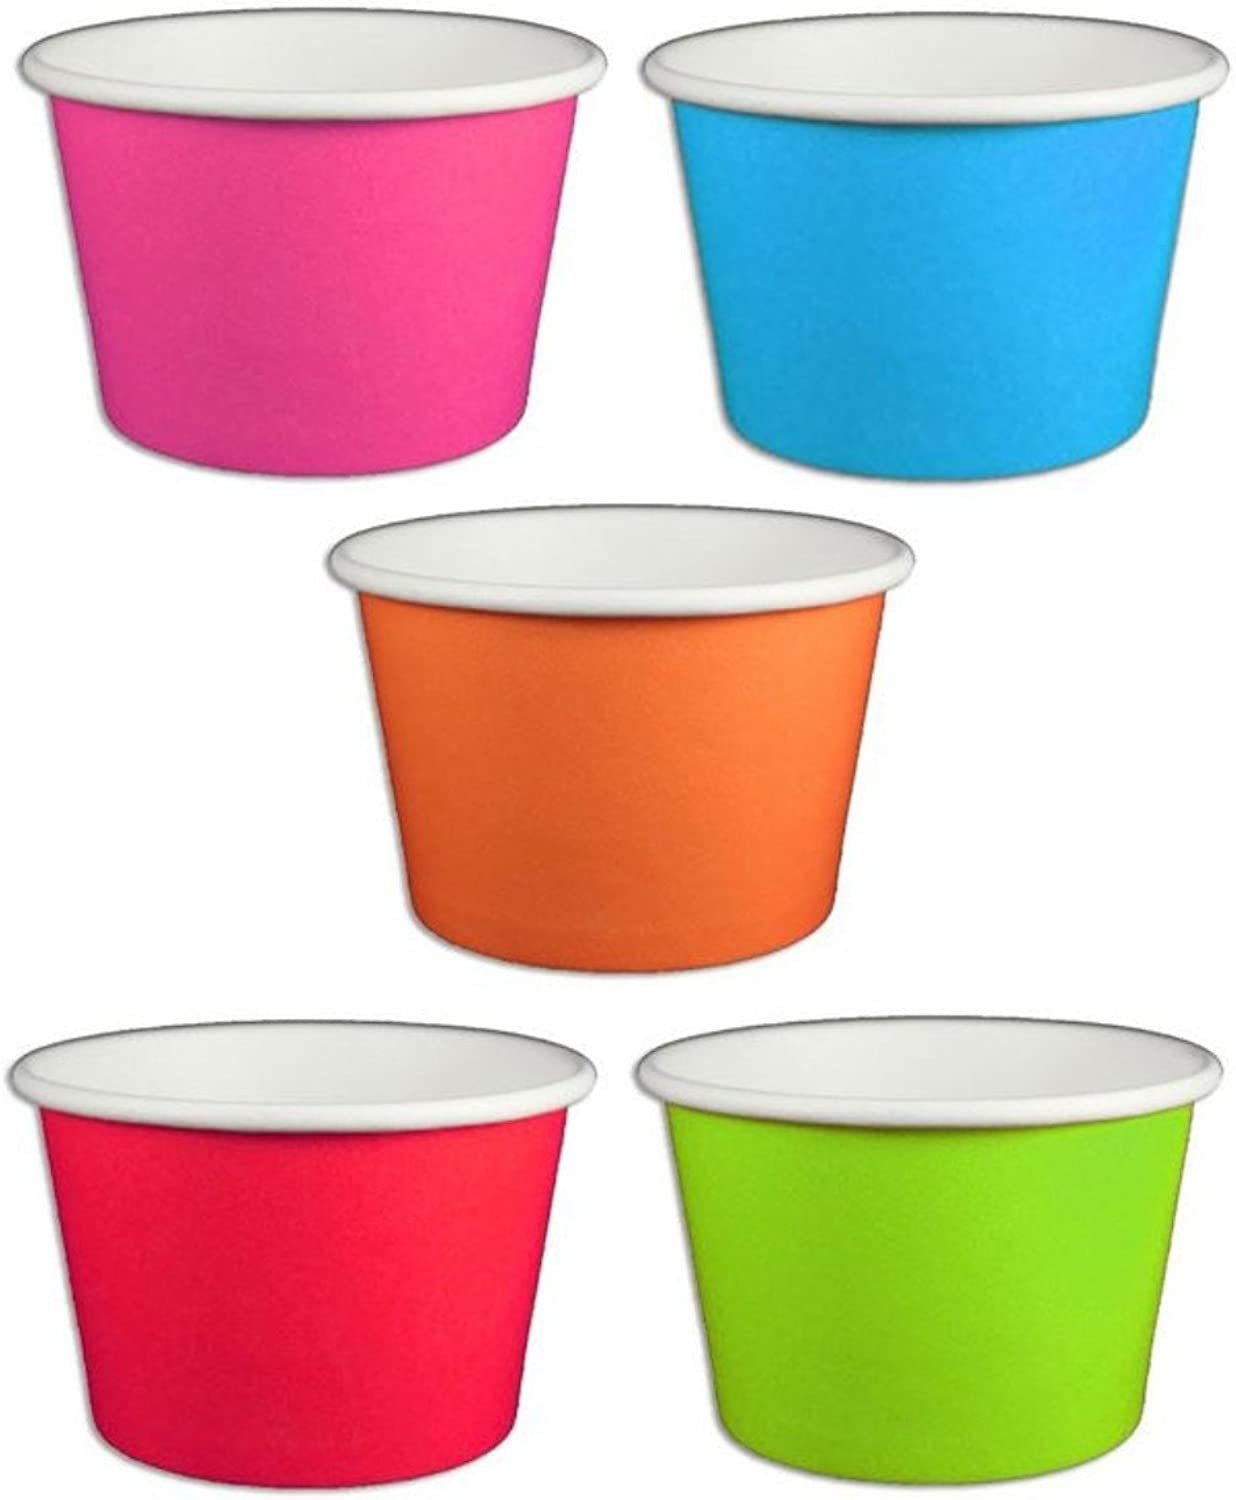 Solid Rainbow color Ice Cream Cups 8 oz  50 count by Beach Party